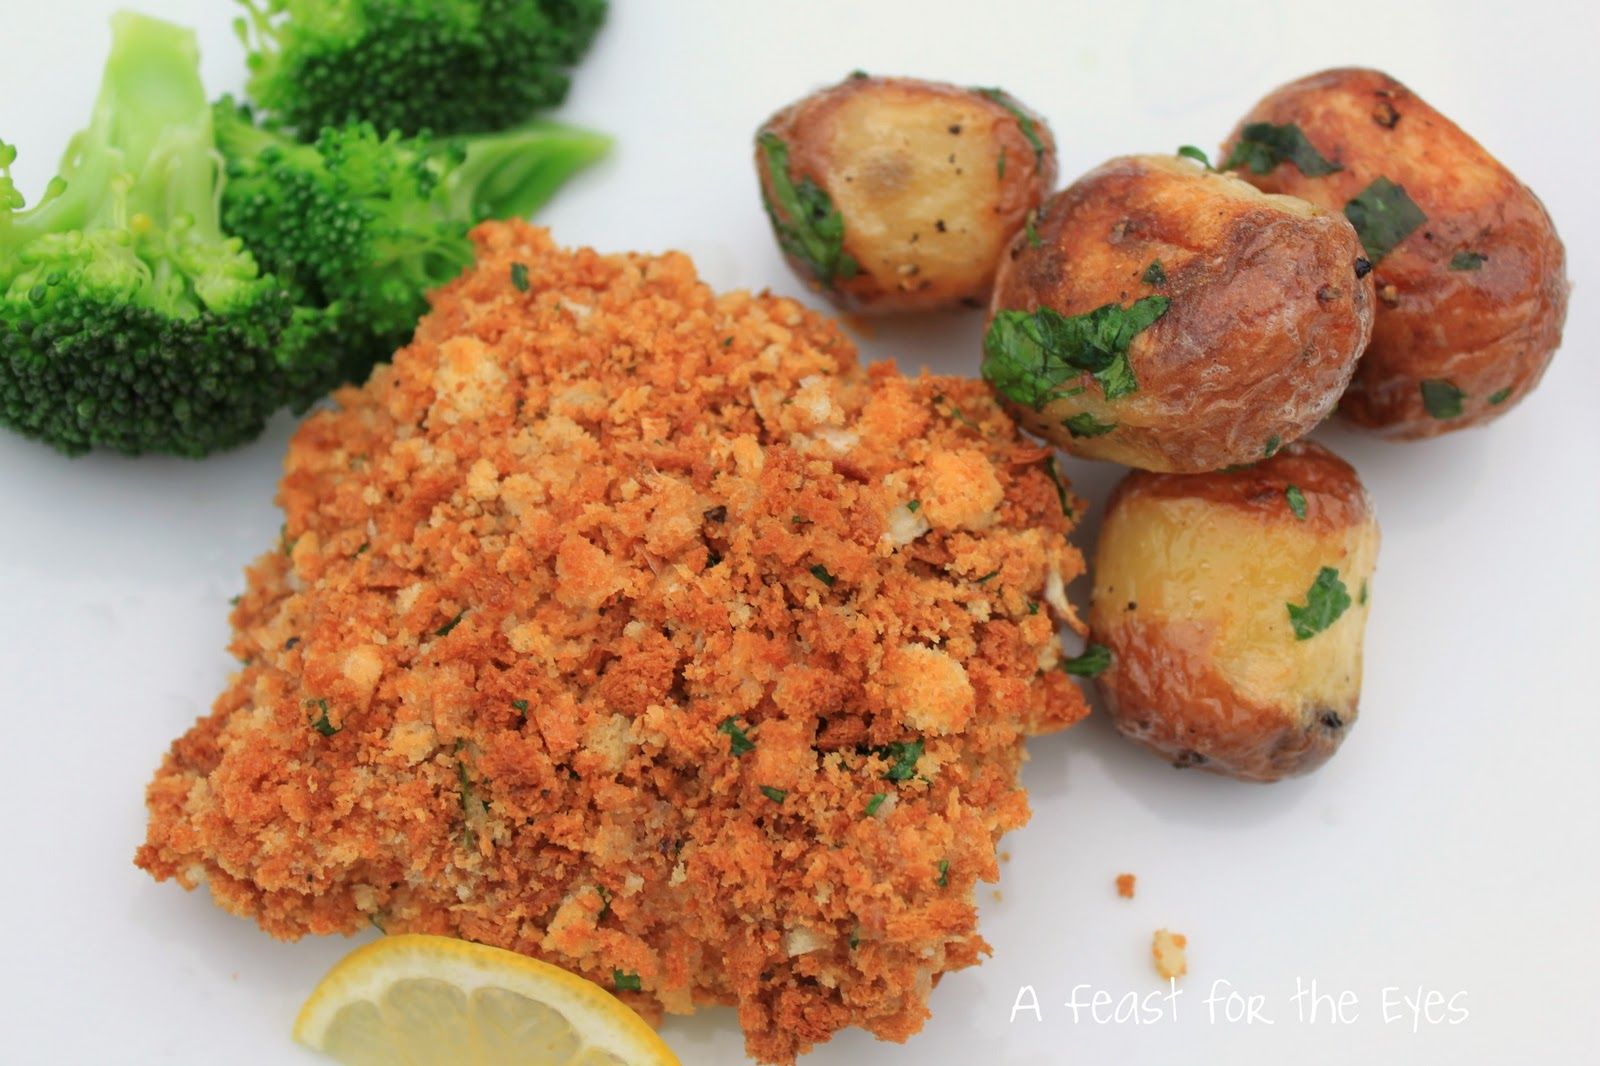 A feast for the eyes crunchy oven fried fish for Crispy baked whiting fish recipes